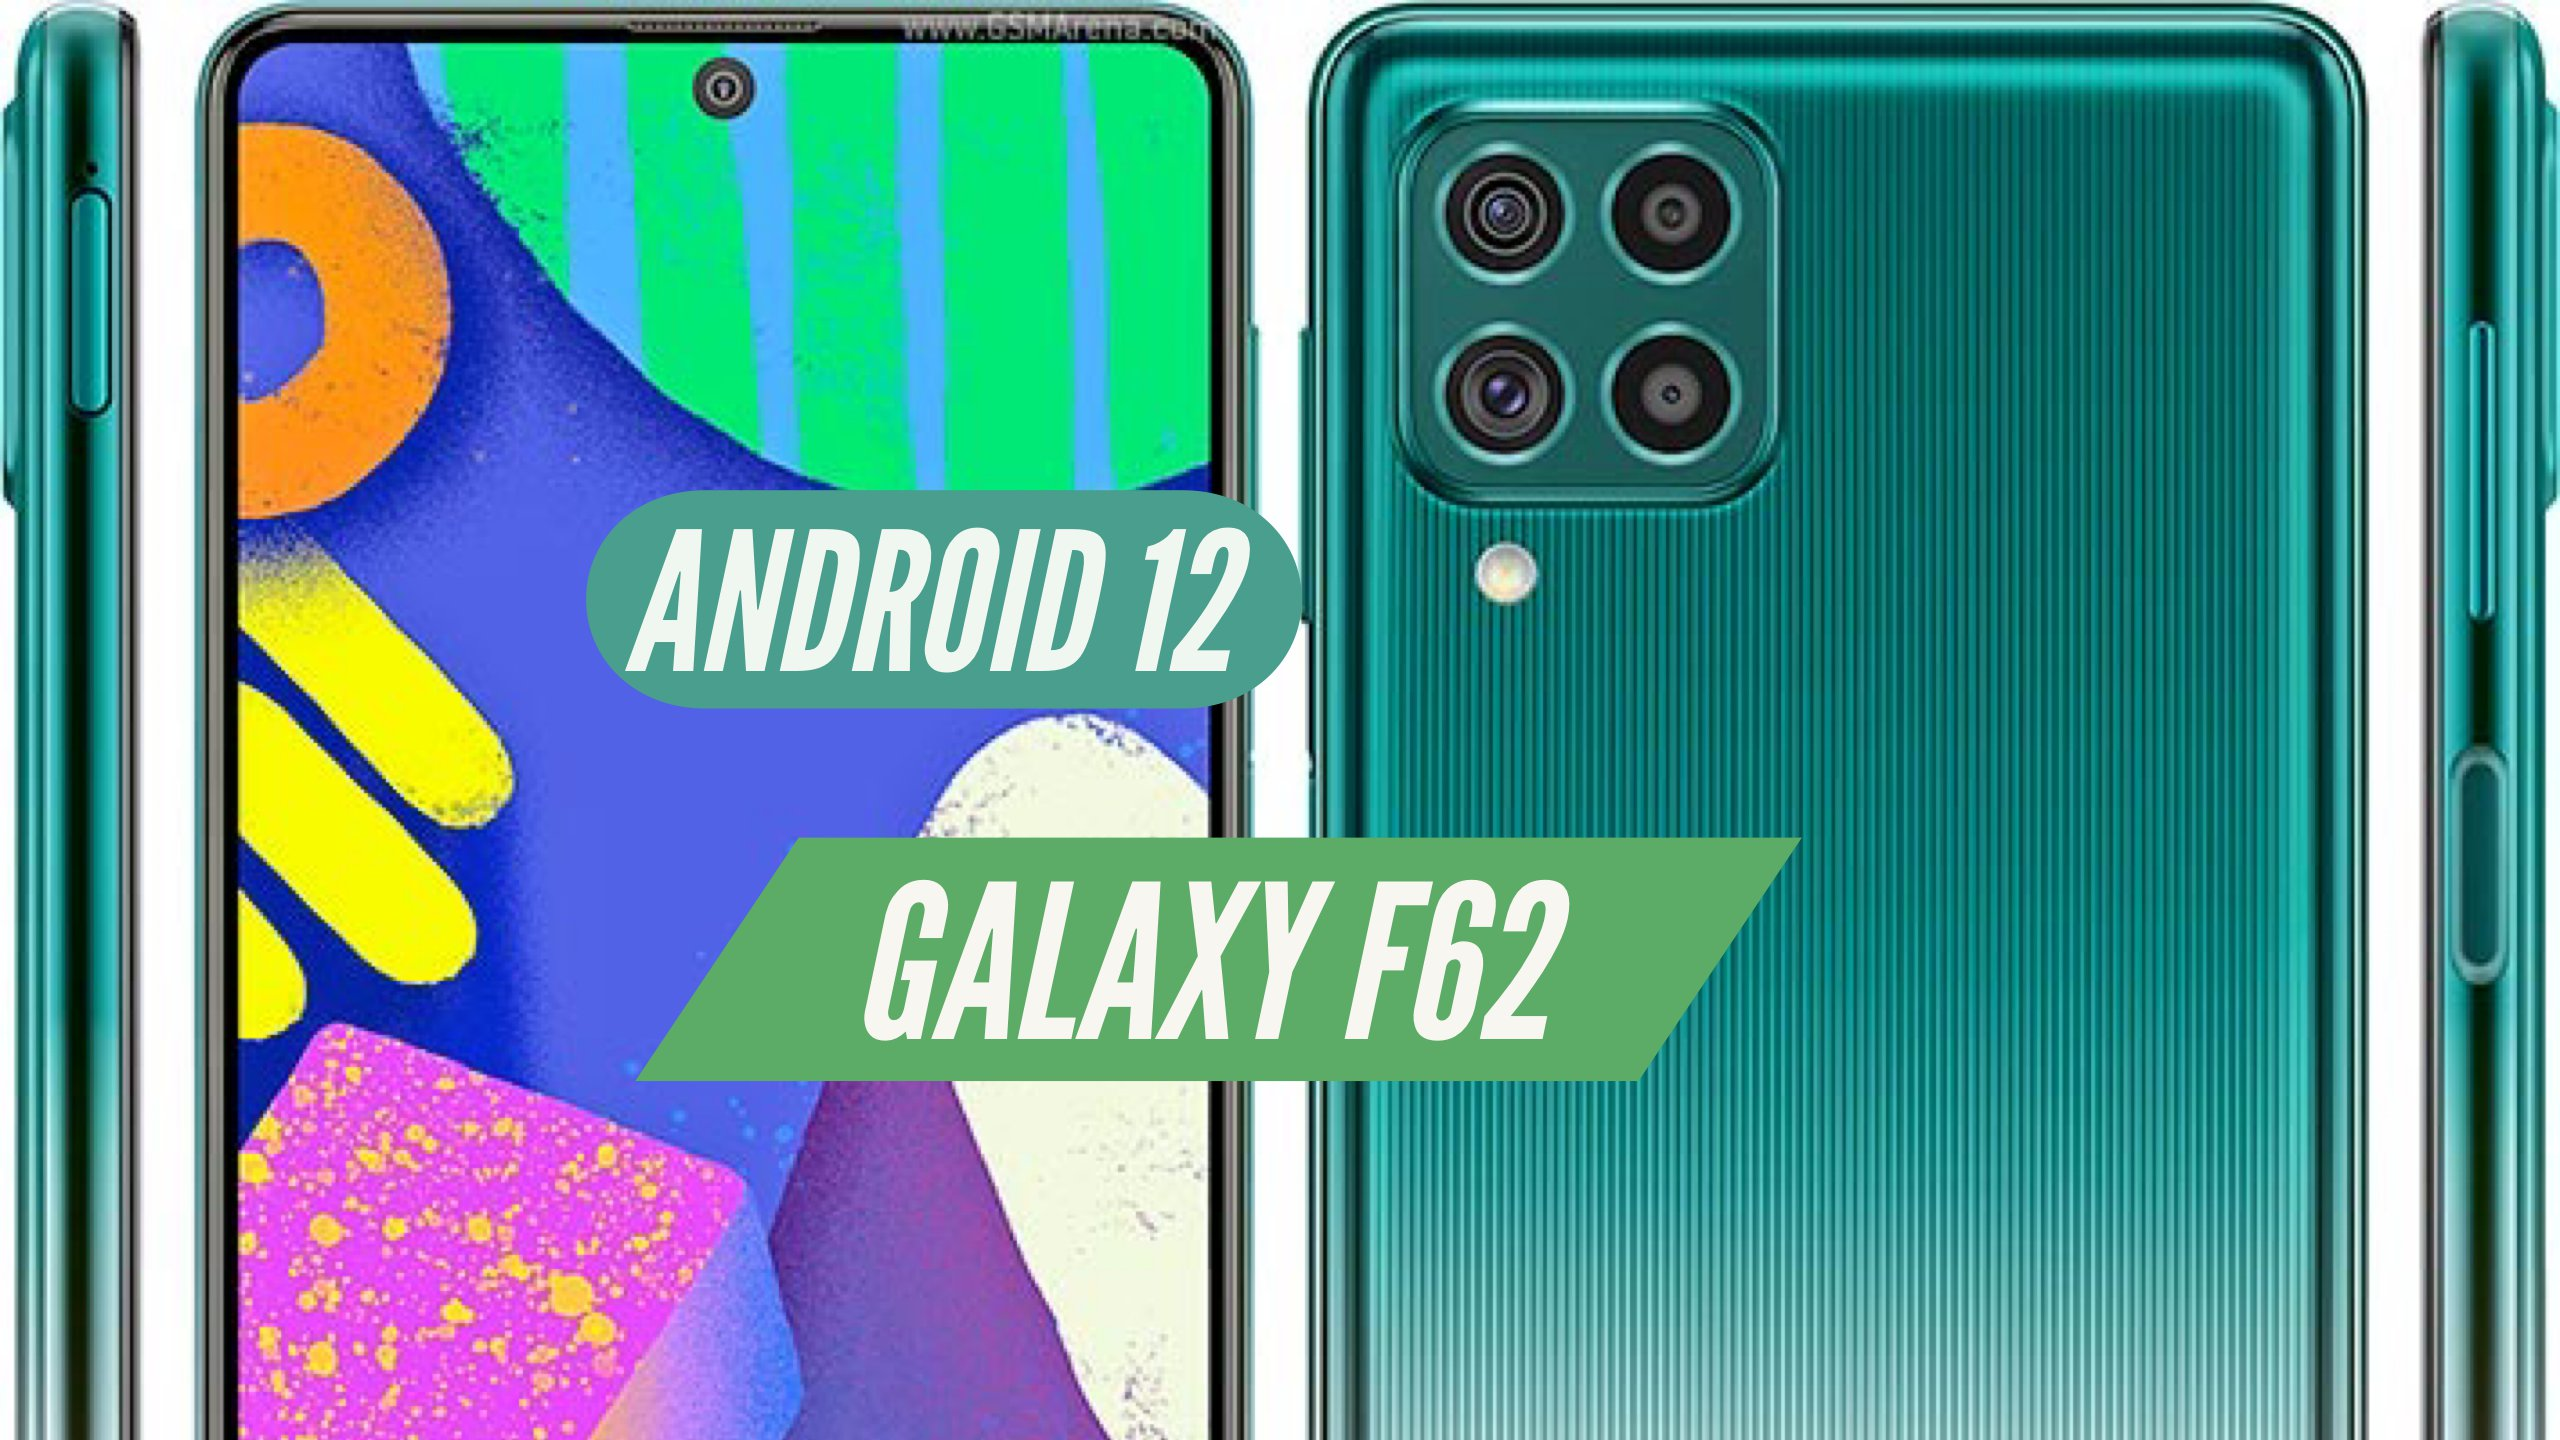 Galaxy F62 Android 12